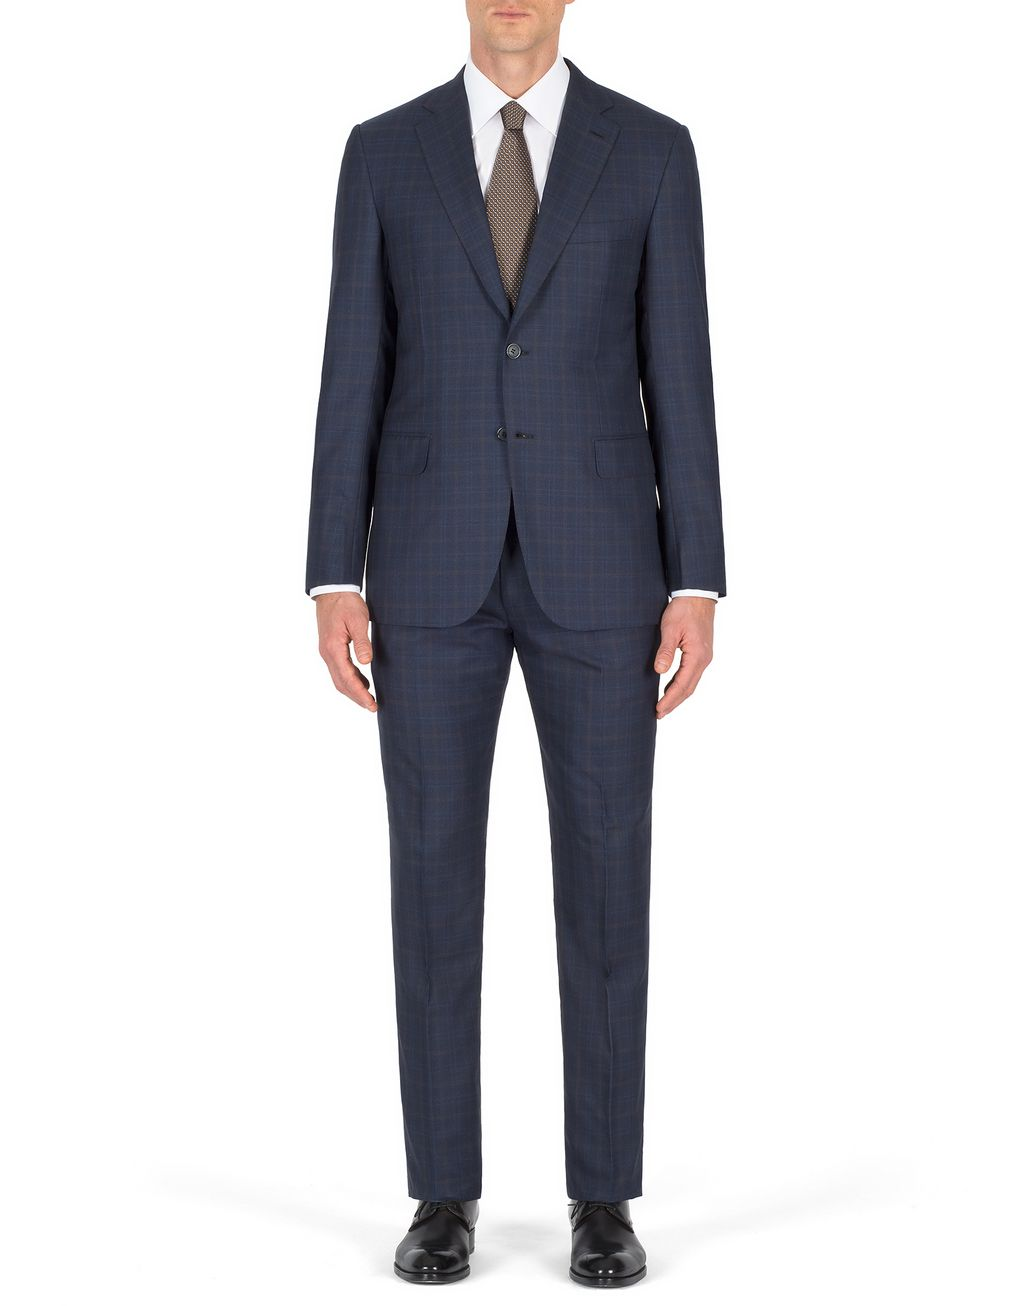 BRIONI Navy-Blue Subtle Check Brunico Suit Suits & Jackets Man r